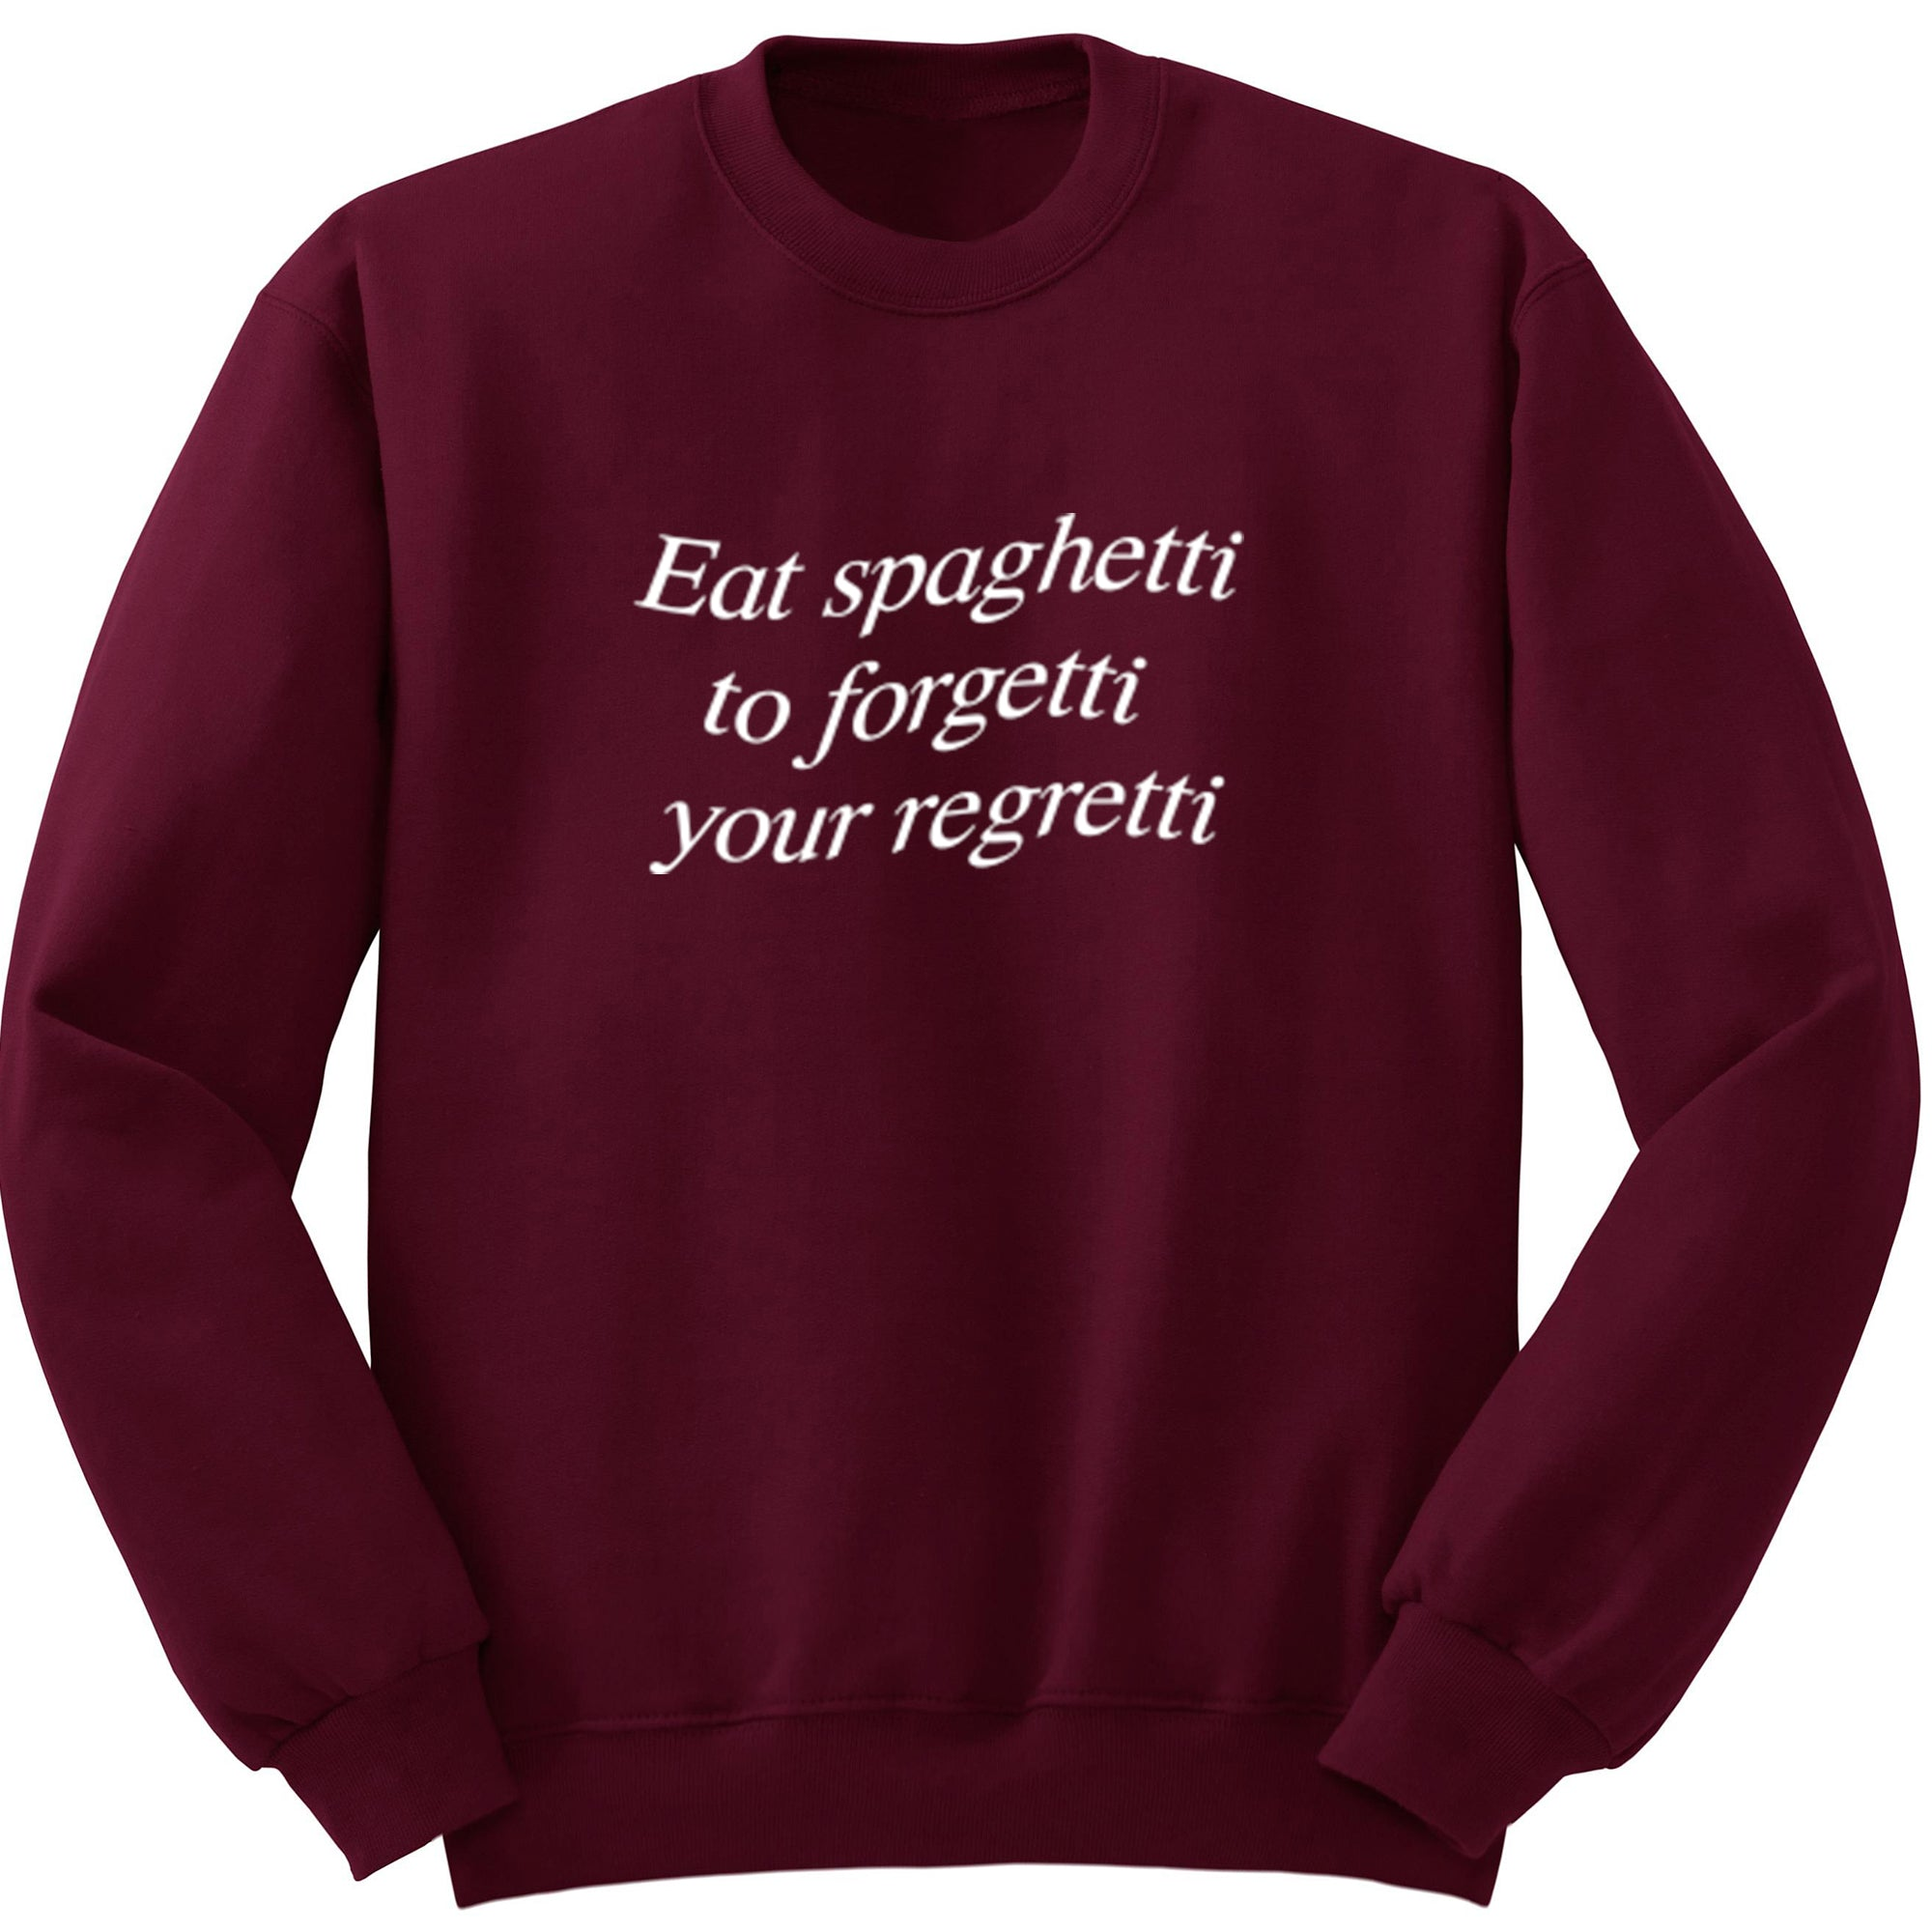 Eat Spaghetti To Forgetti Your Regretti Unisex Jumper S0900 - Illustrated Identity Ltd.